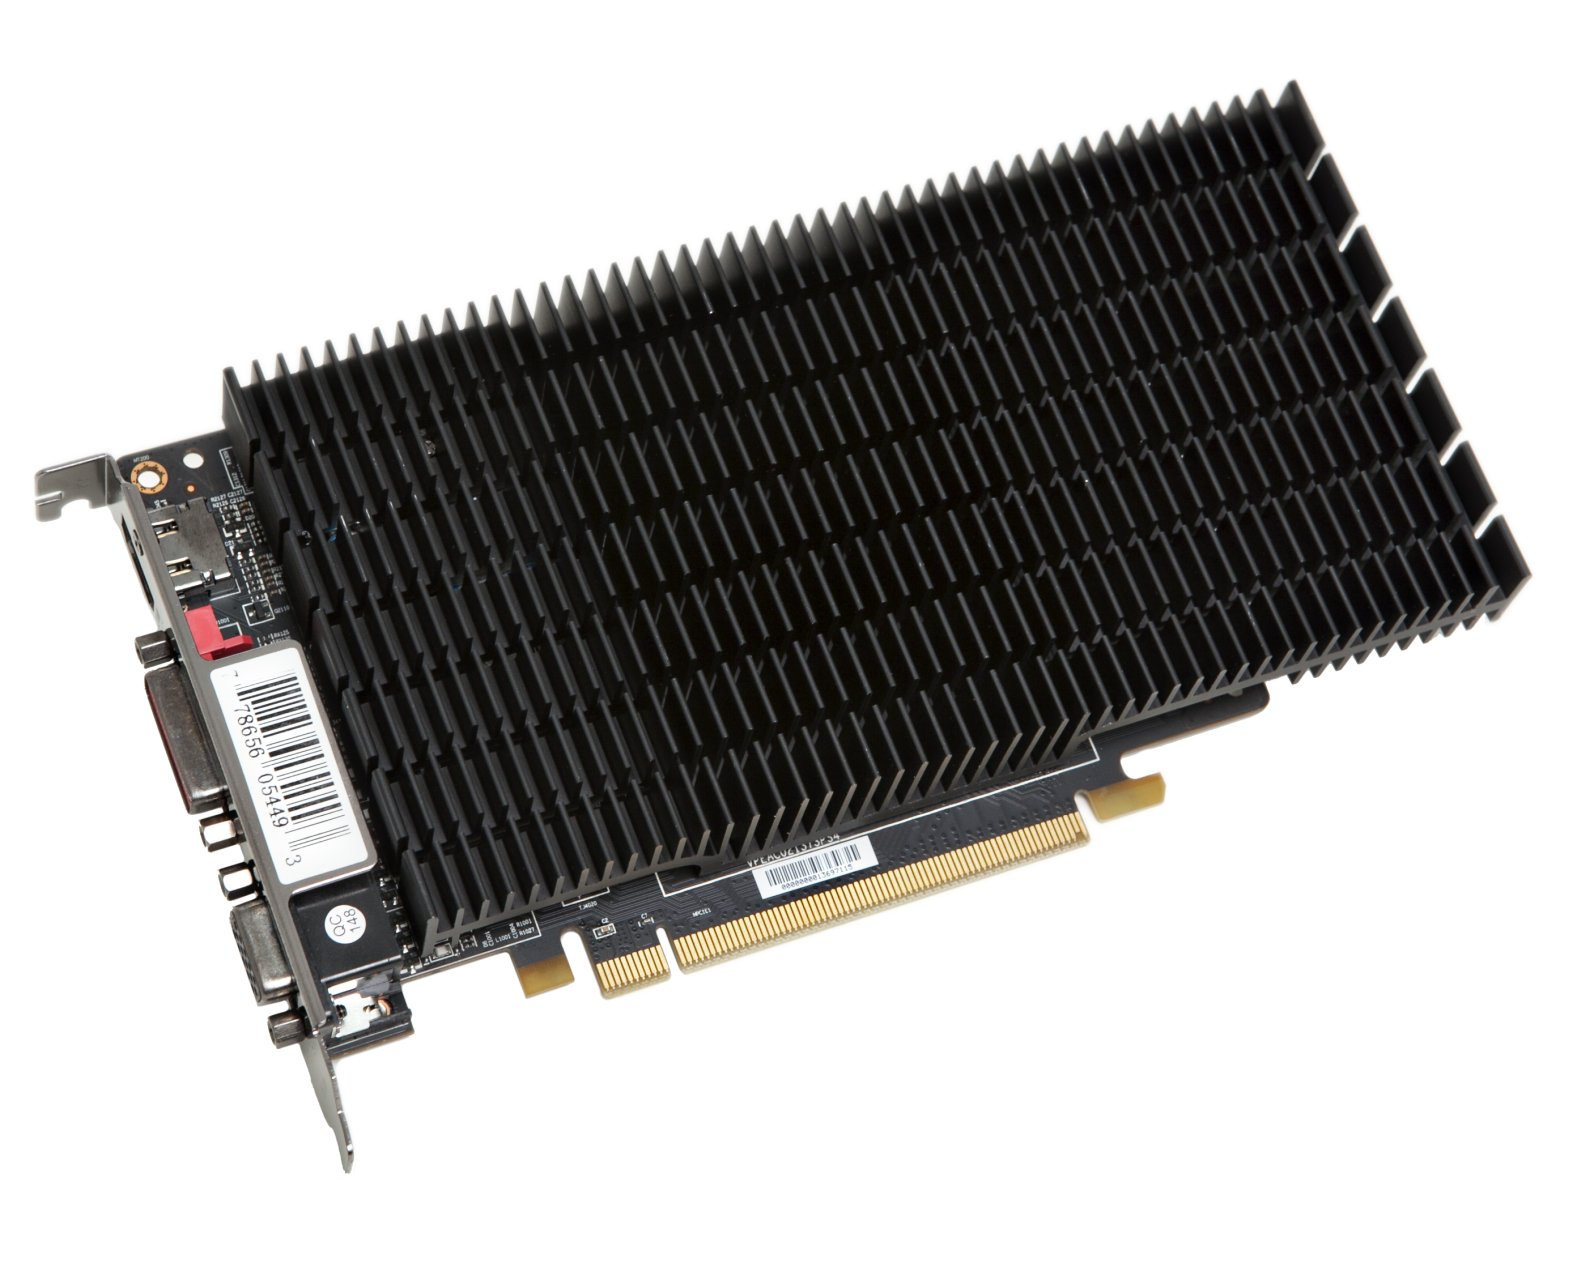 XFX Launches Passively Cooled Radeon HD 5670 Graphics Card